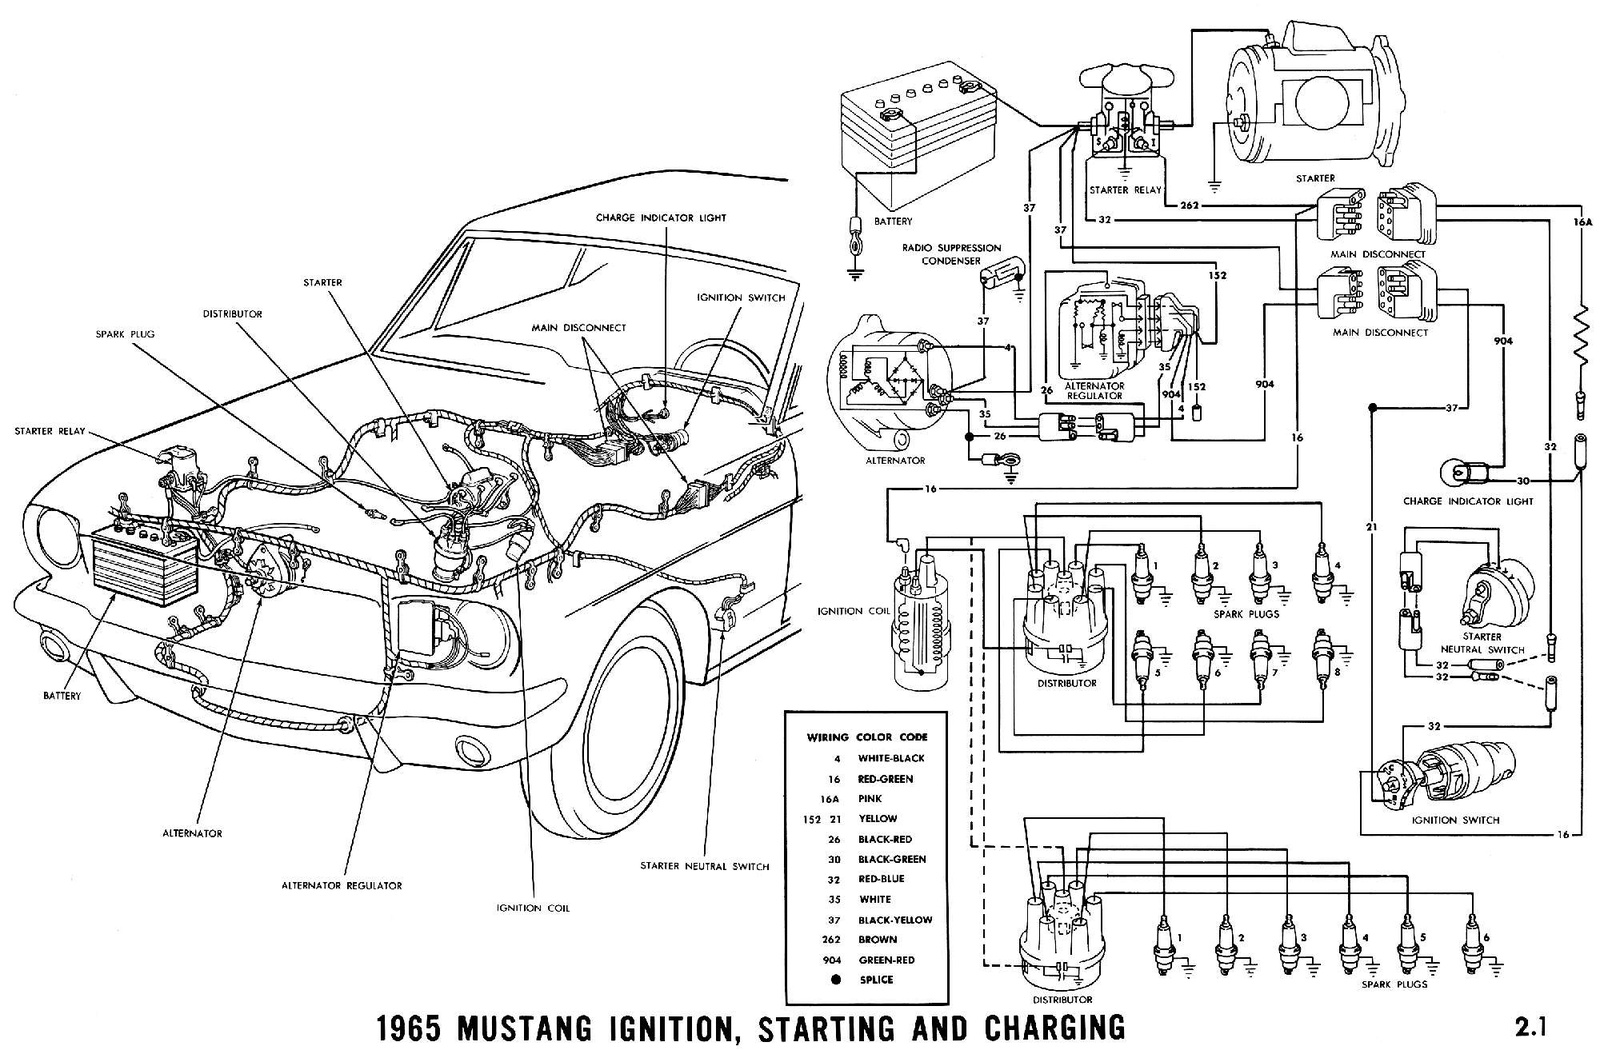 engine wiring 69 ford 302 house wiring diagram symbols u2022 rh maxturner co